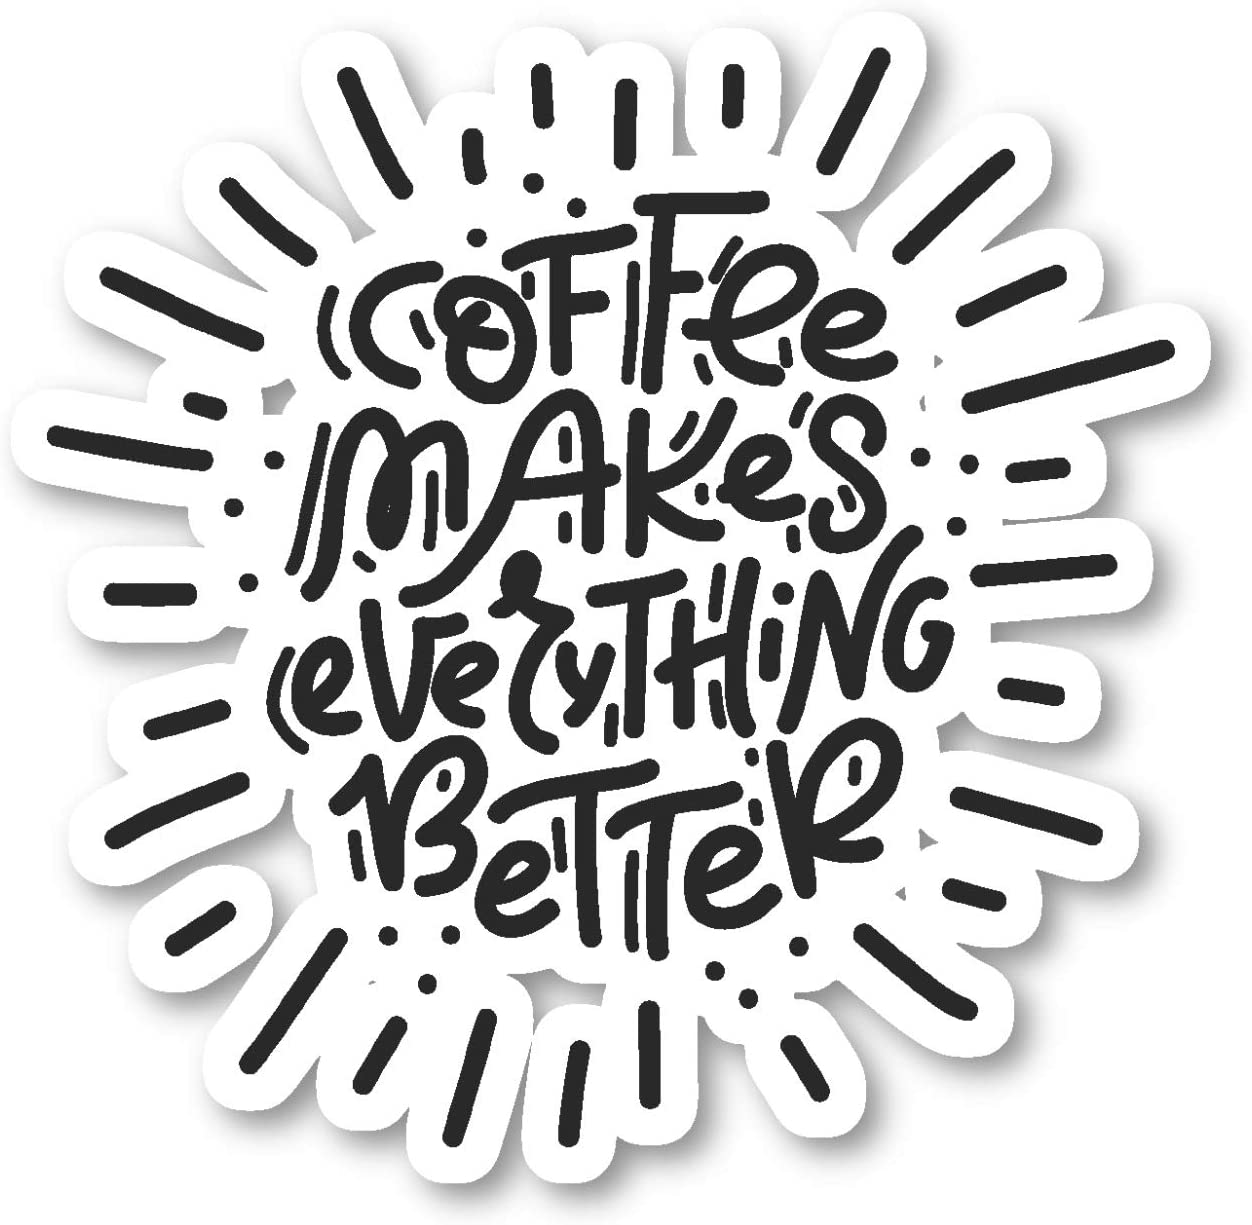 "Coffee Quotes Sticker Funny Coffee Quotes Stickers - Laptop Stickers - 2.5"" Vinyl Decal - Laptop, Phone, Tablet Vinyl Decal Sticker S7339"